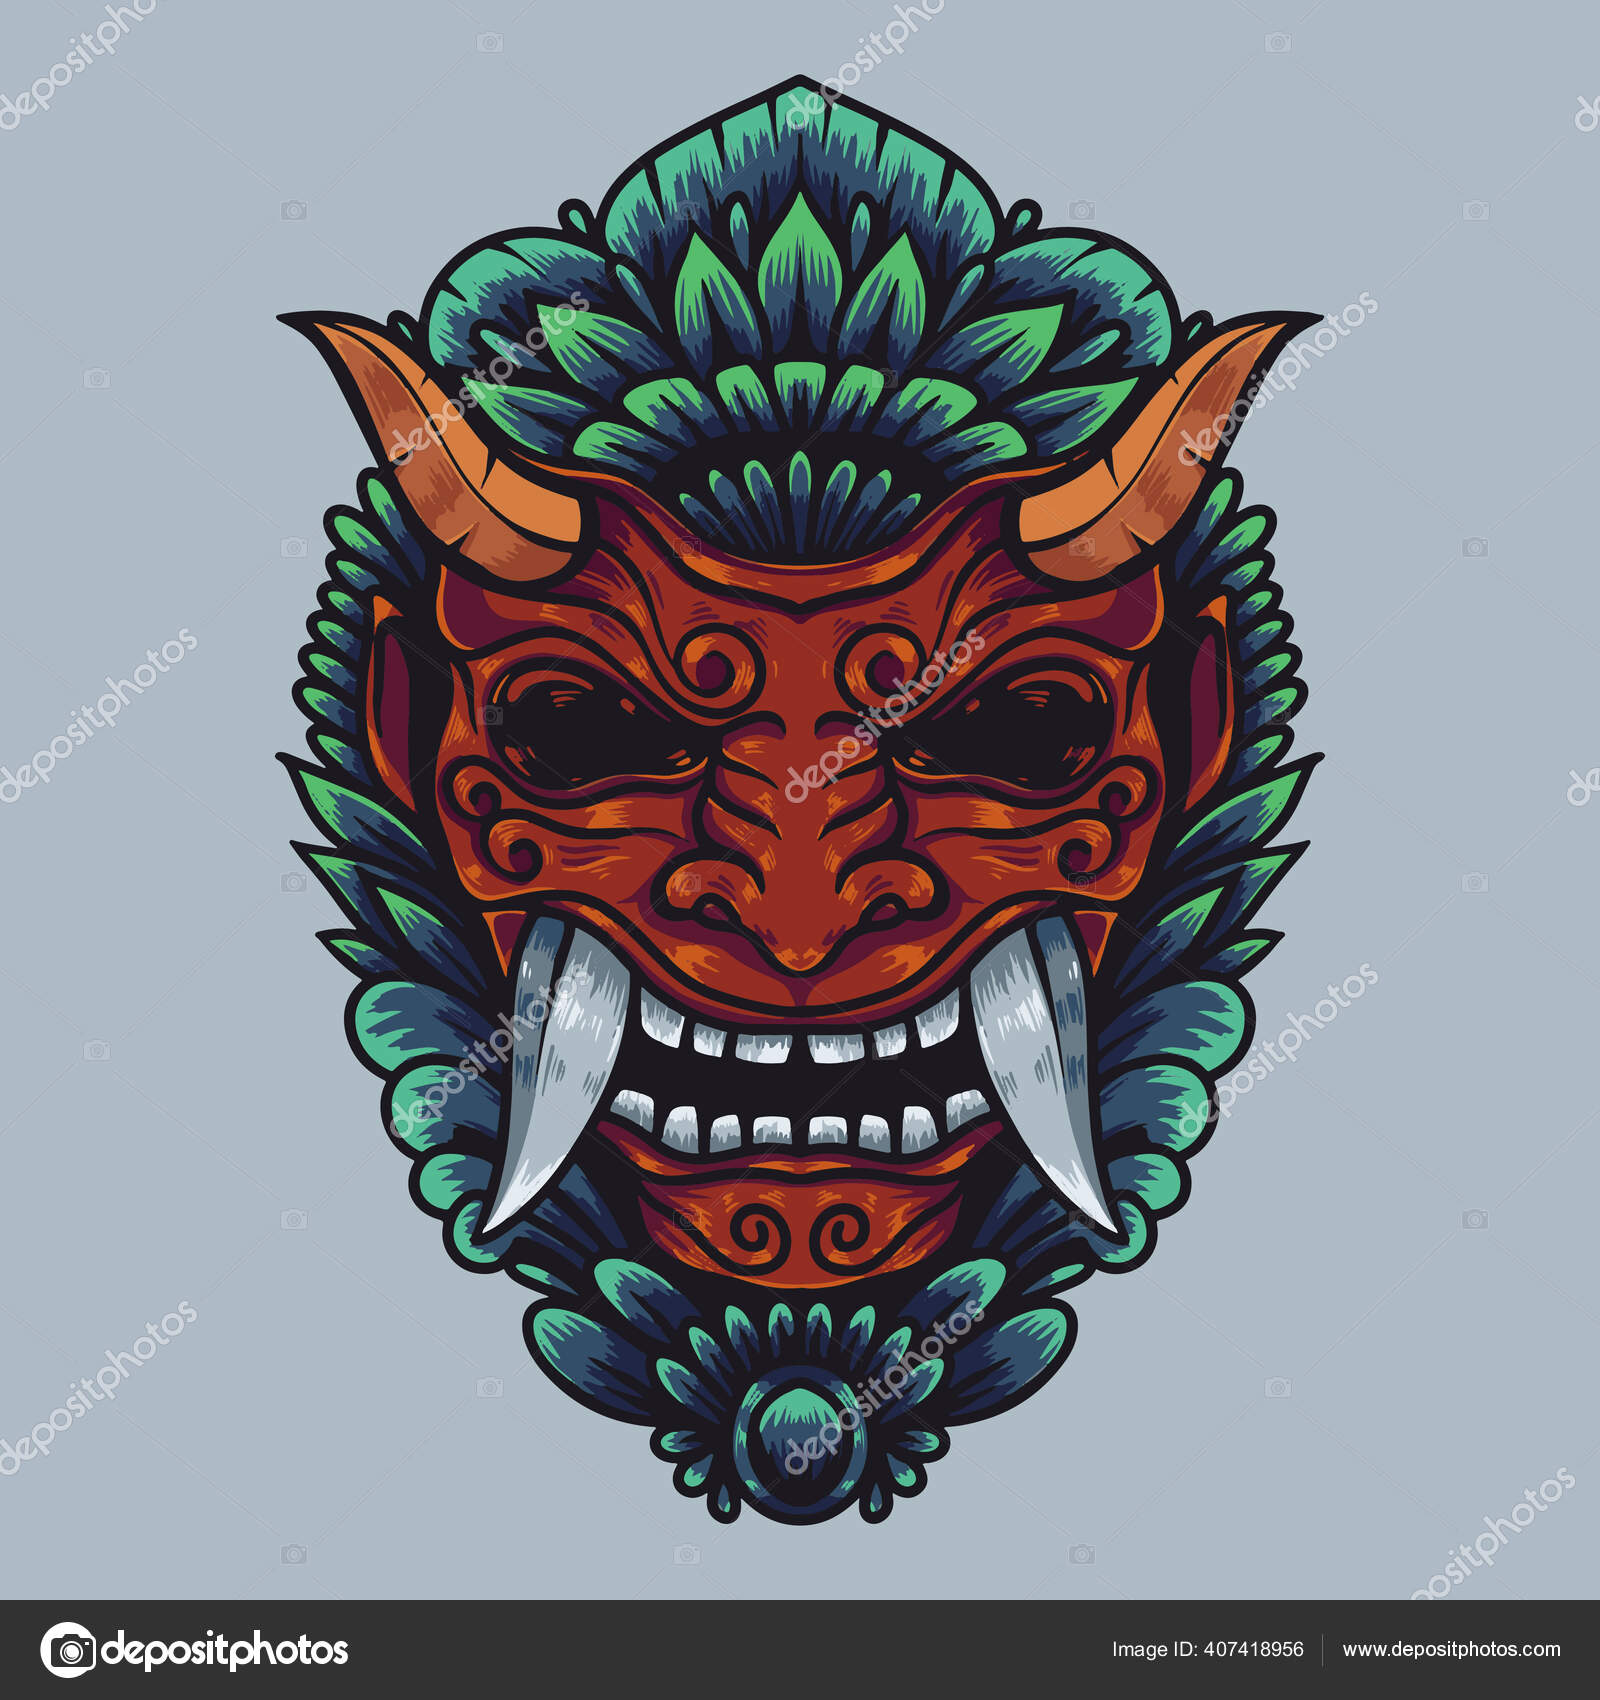 ᐈ gold barong stock vectors royalty free barong backgrounds download on depositphotos https depositphotos com 407418956 stock illustration barong balinese culture vector artwork html